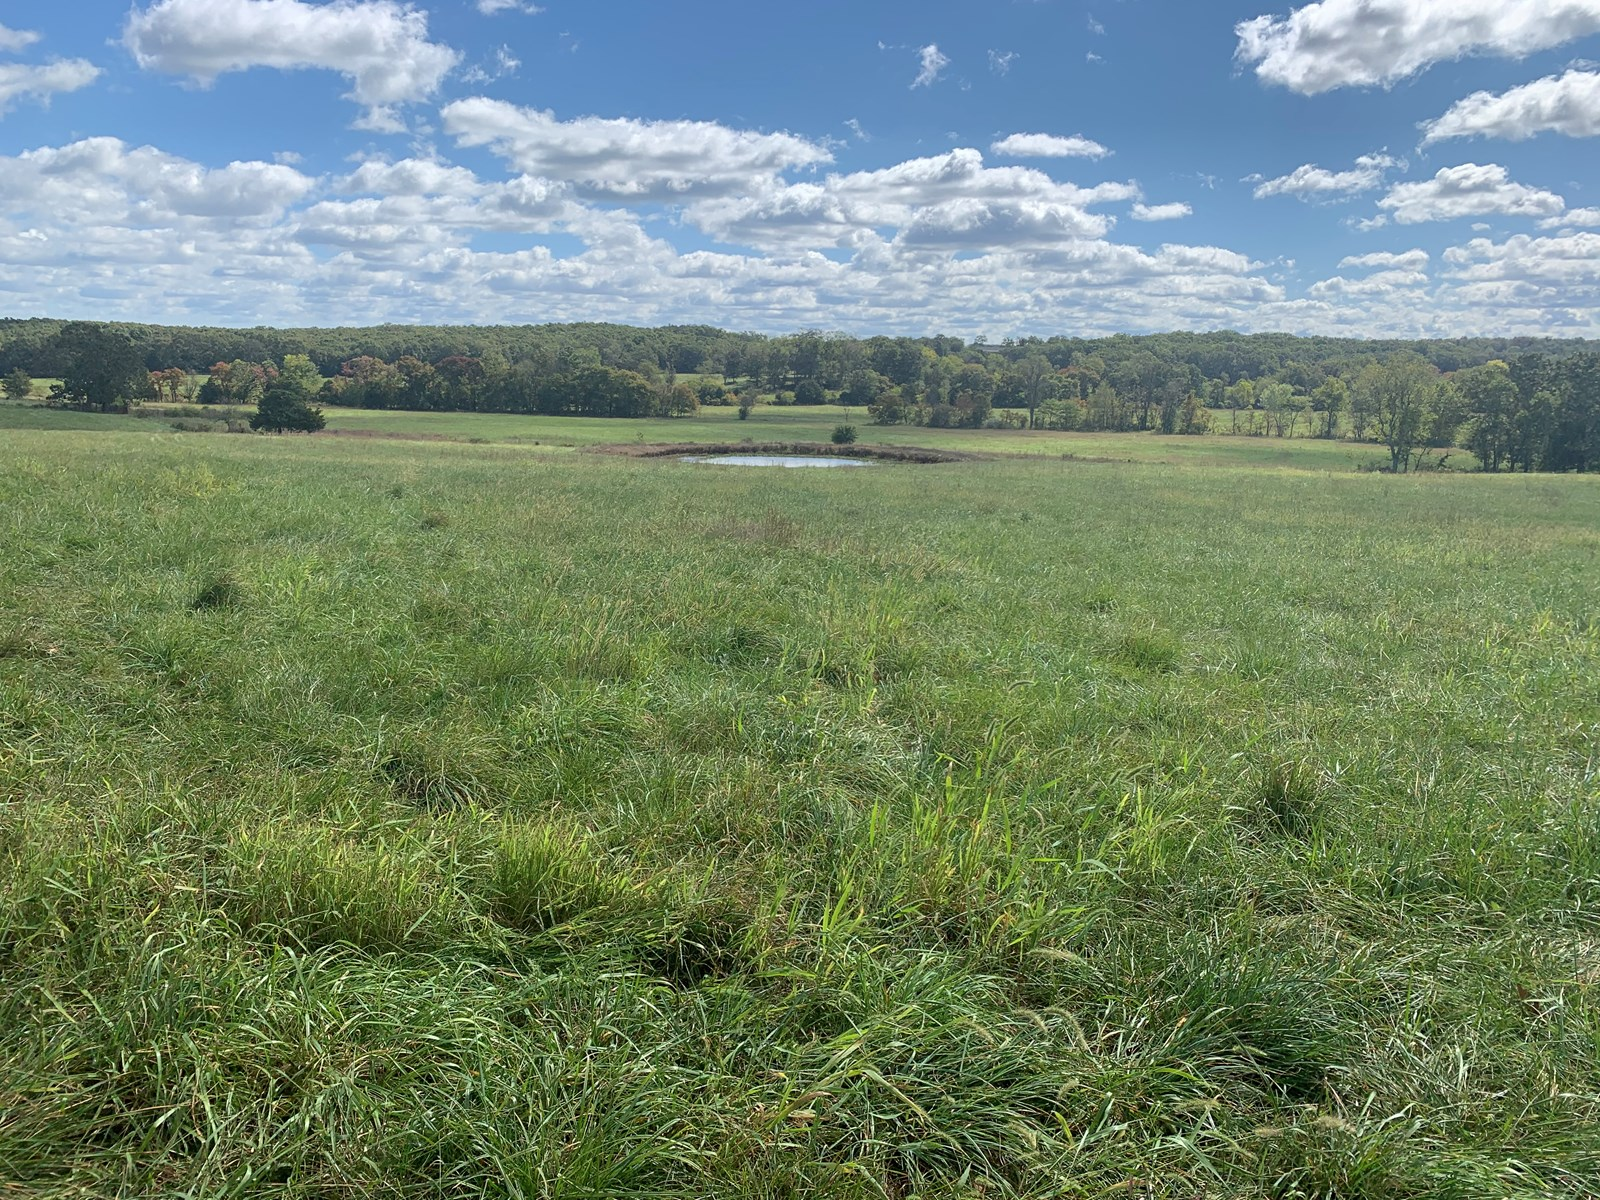 Ranch Land in Southern Missouri For Sale